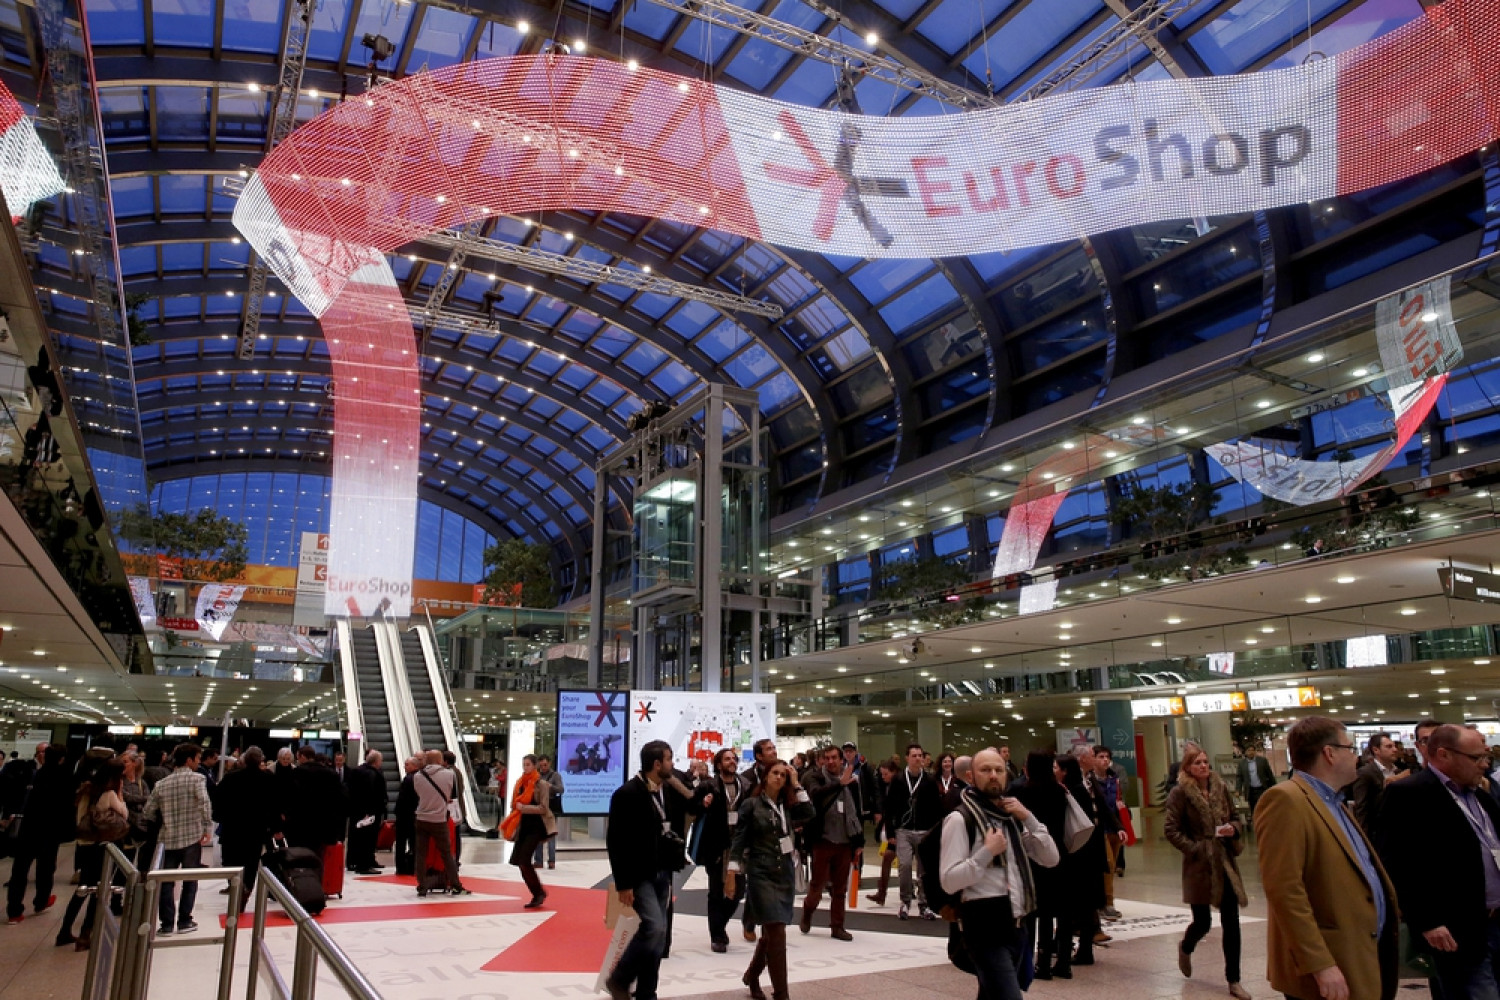 @2020 Euroshop - Dusseldorf, Germany